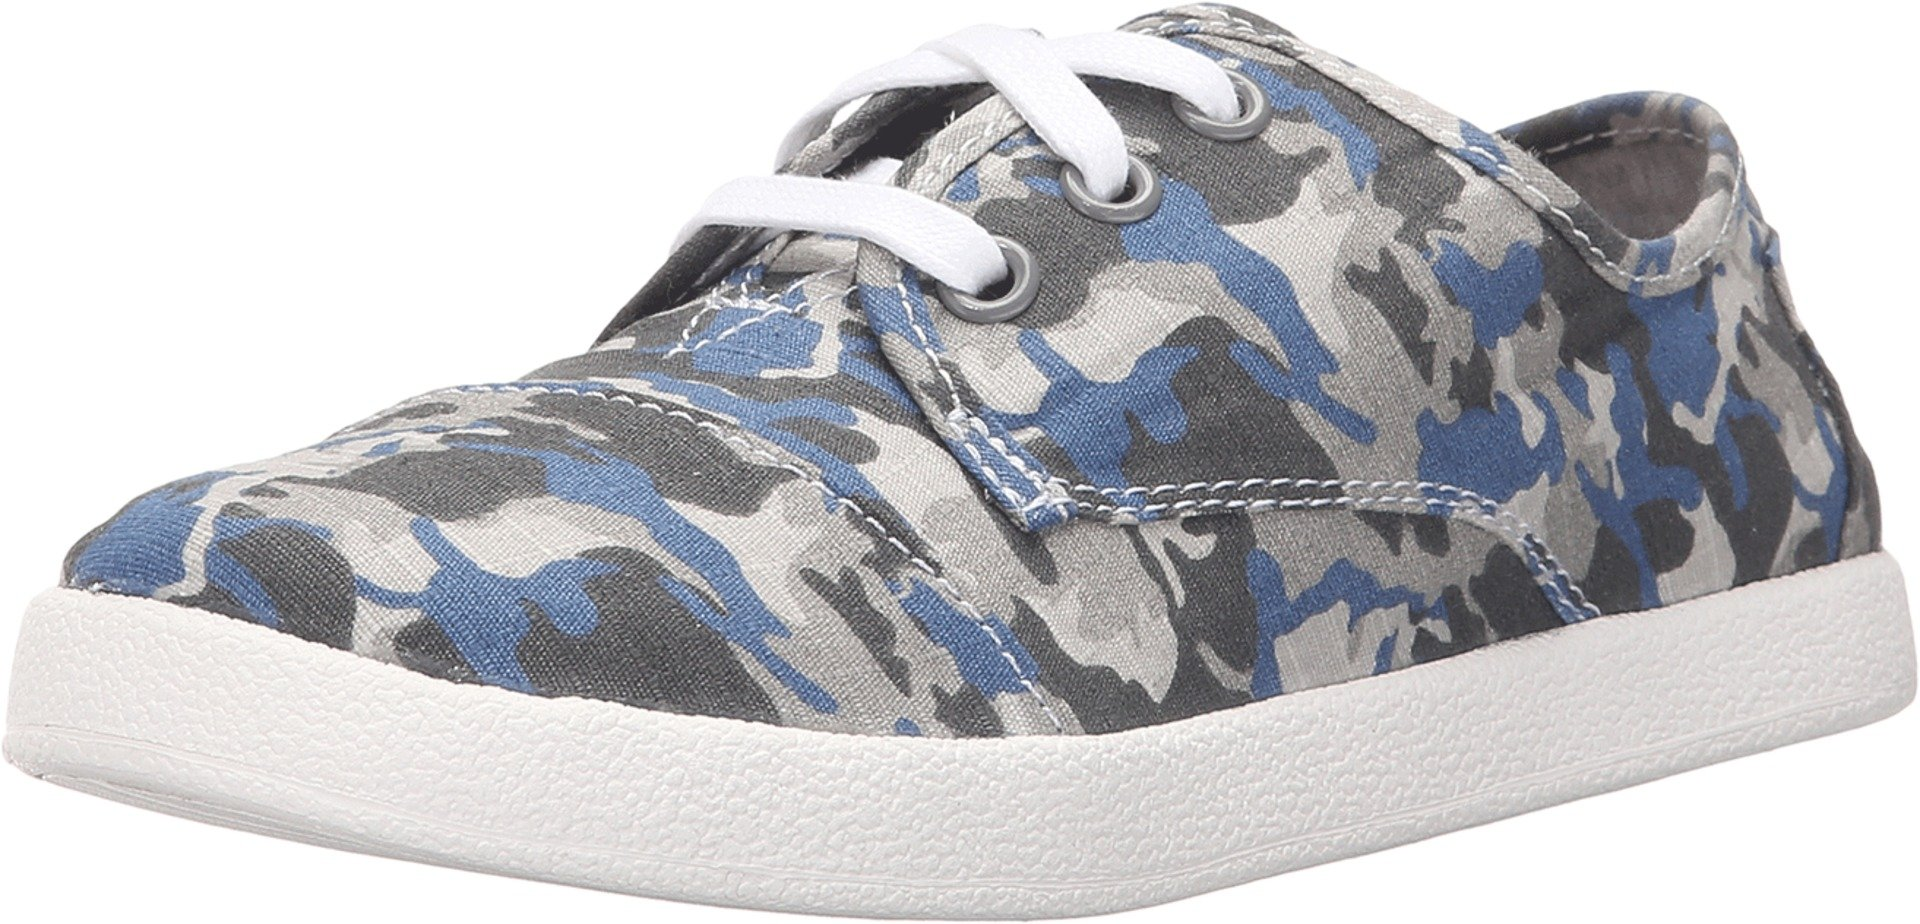 TOMS Kids Unisex Paseo Sneaker (Little Kid/Big Kid) Camo Cotton Ripstop 2 M US Little Kid